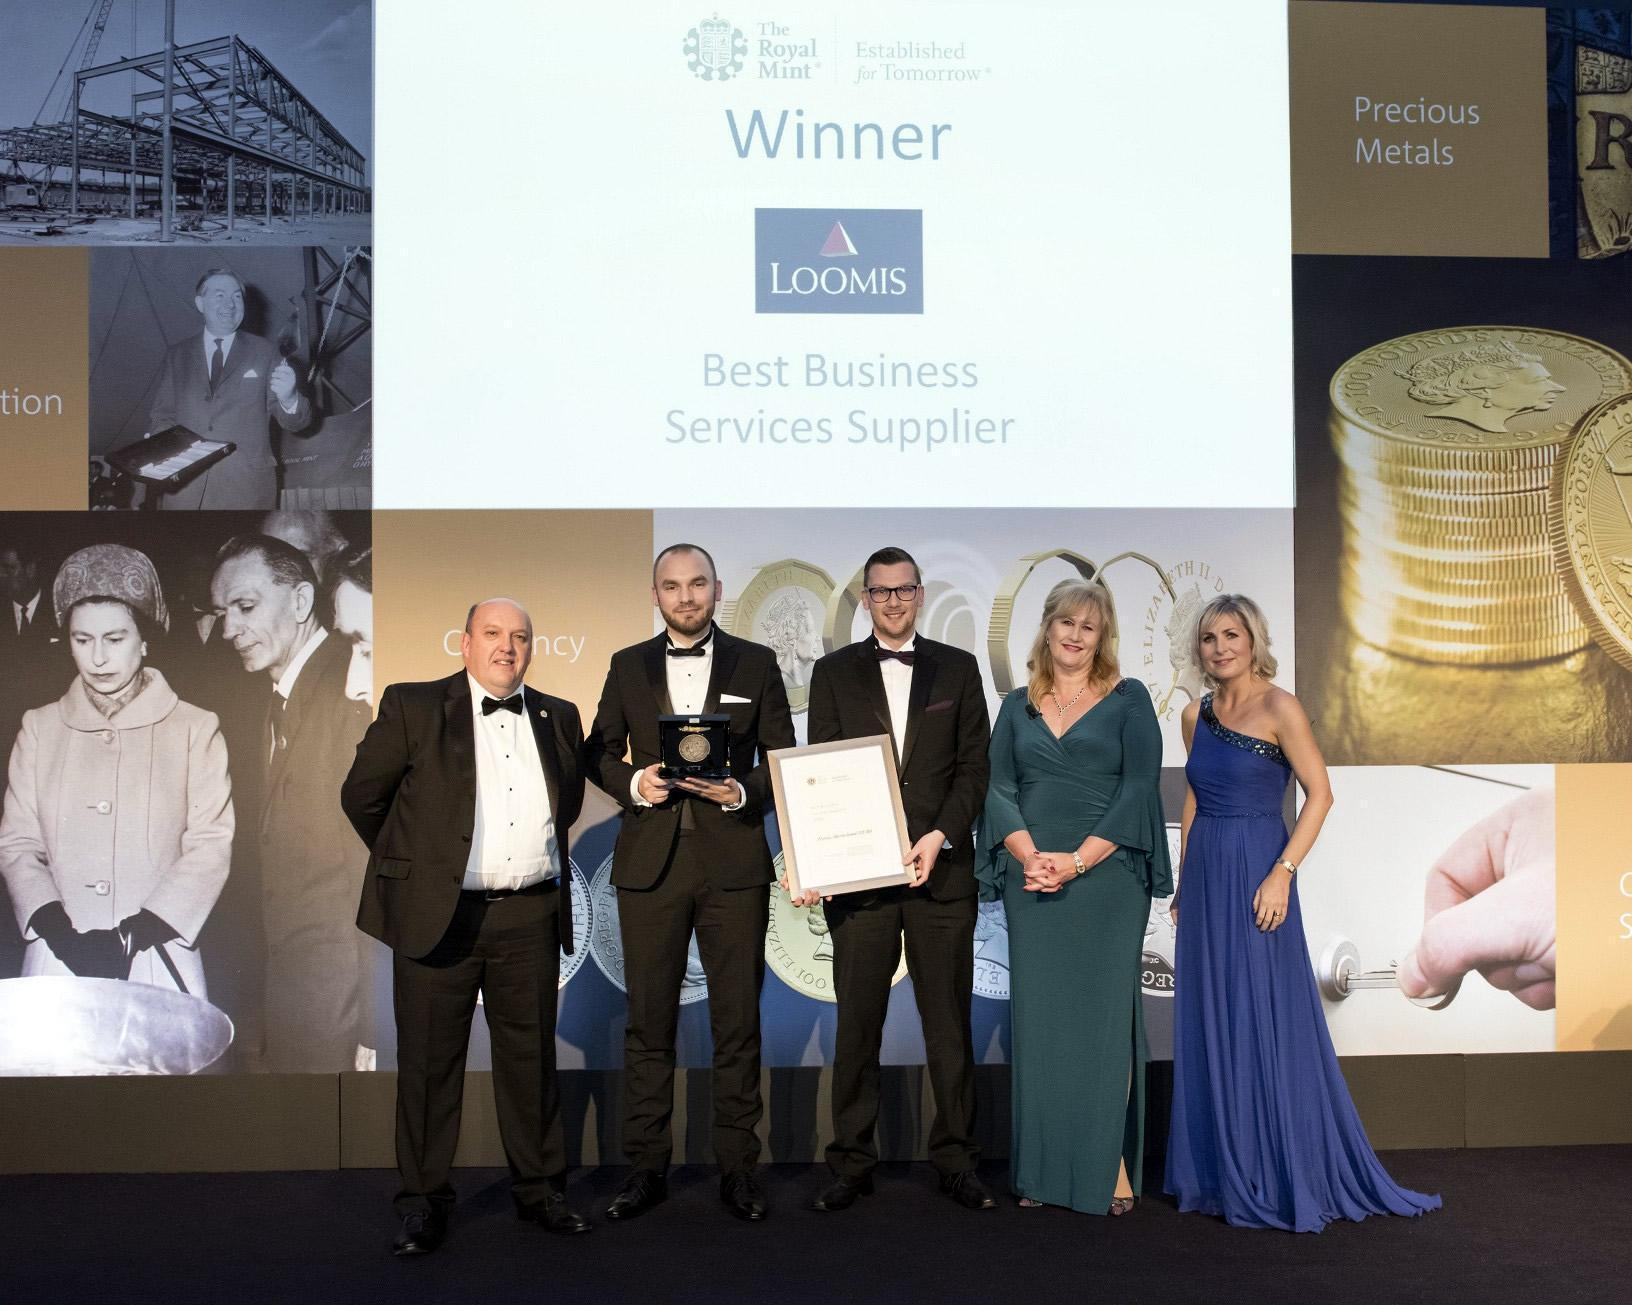 Representatives from Loomis UK accept the award from The Royal Mint